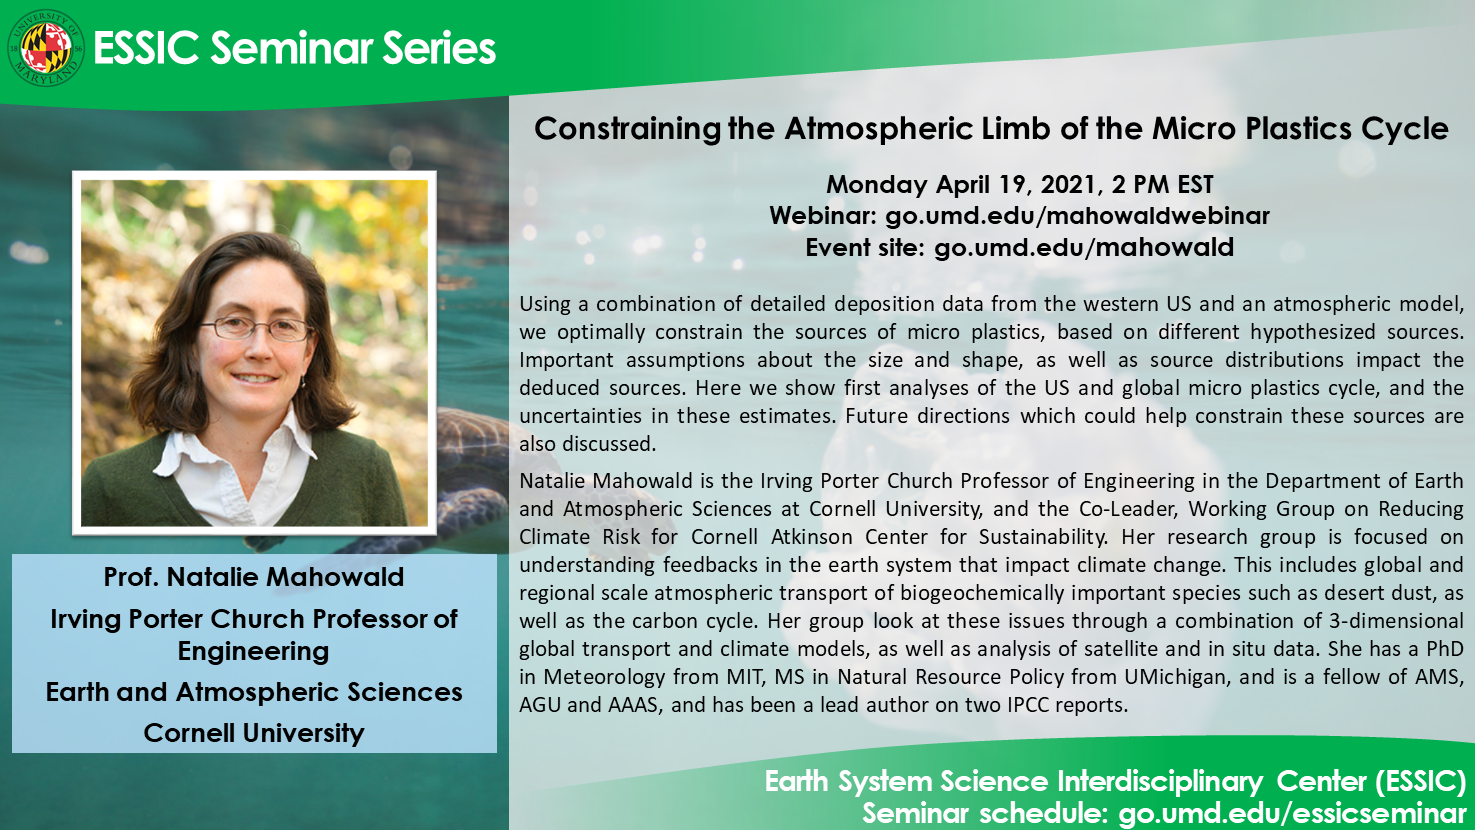 Prof. Natalie Mahowald's seminar flyer. All text is displayed on the webpage.